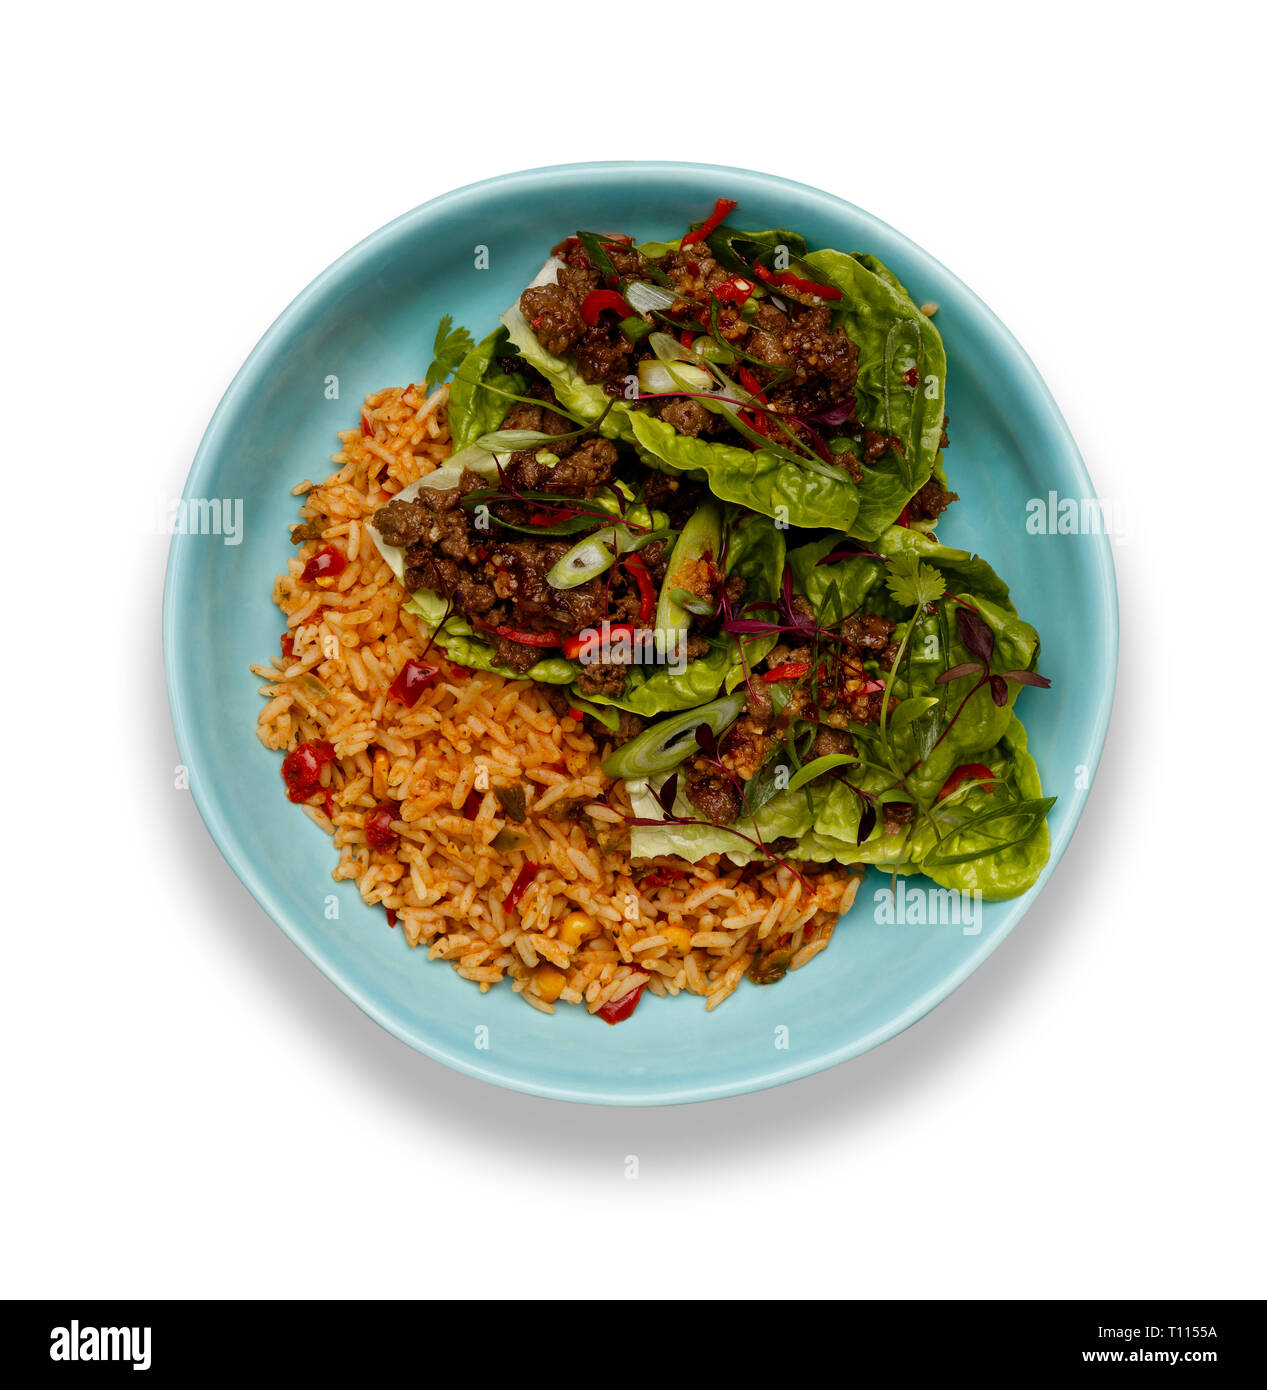 A bowl of succulent Spicy Beef Lettus Wraps on a bed of rice isolated on a white background with a drop shadow. - Stock Image